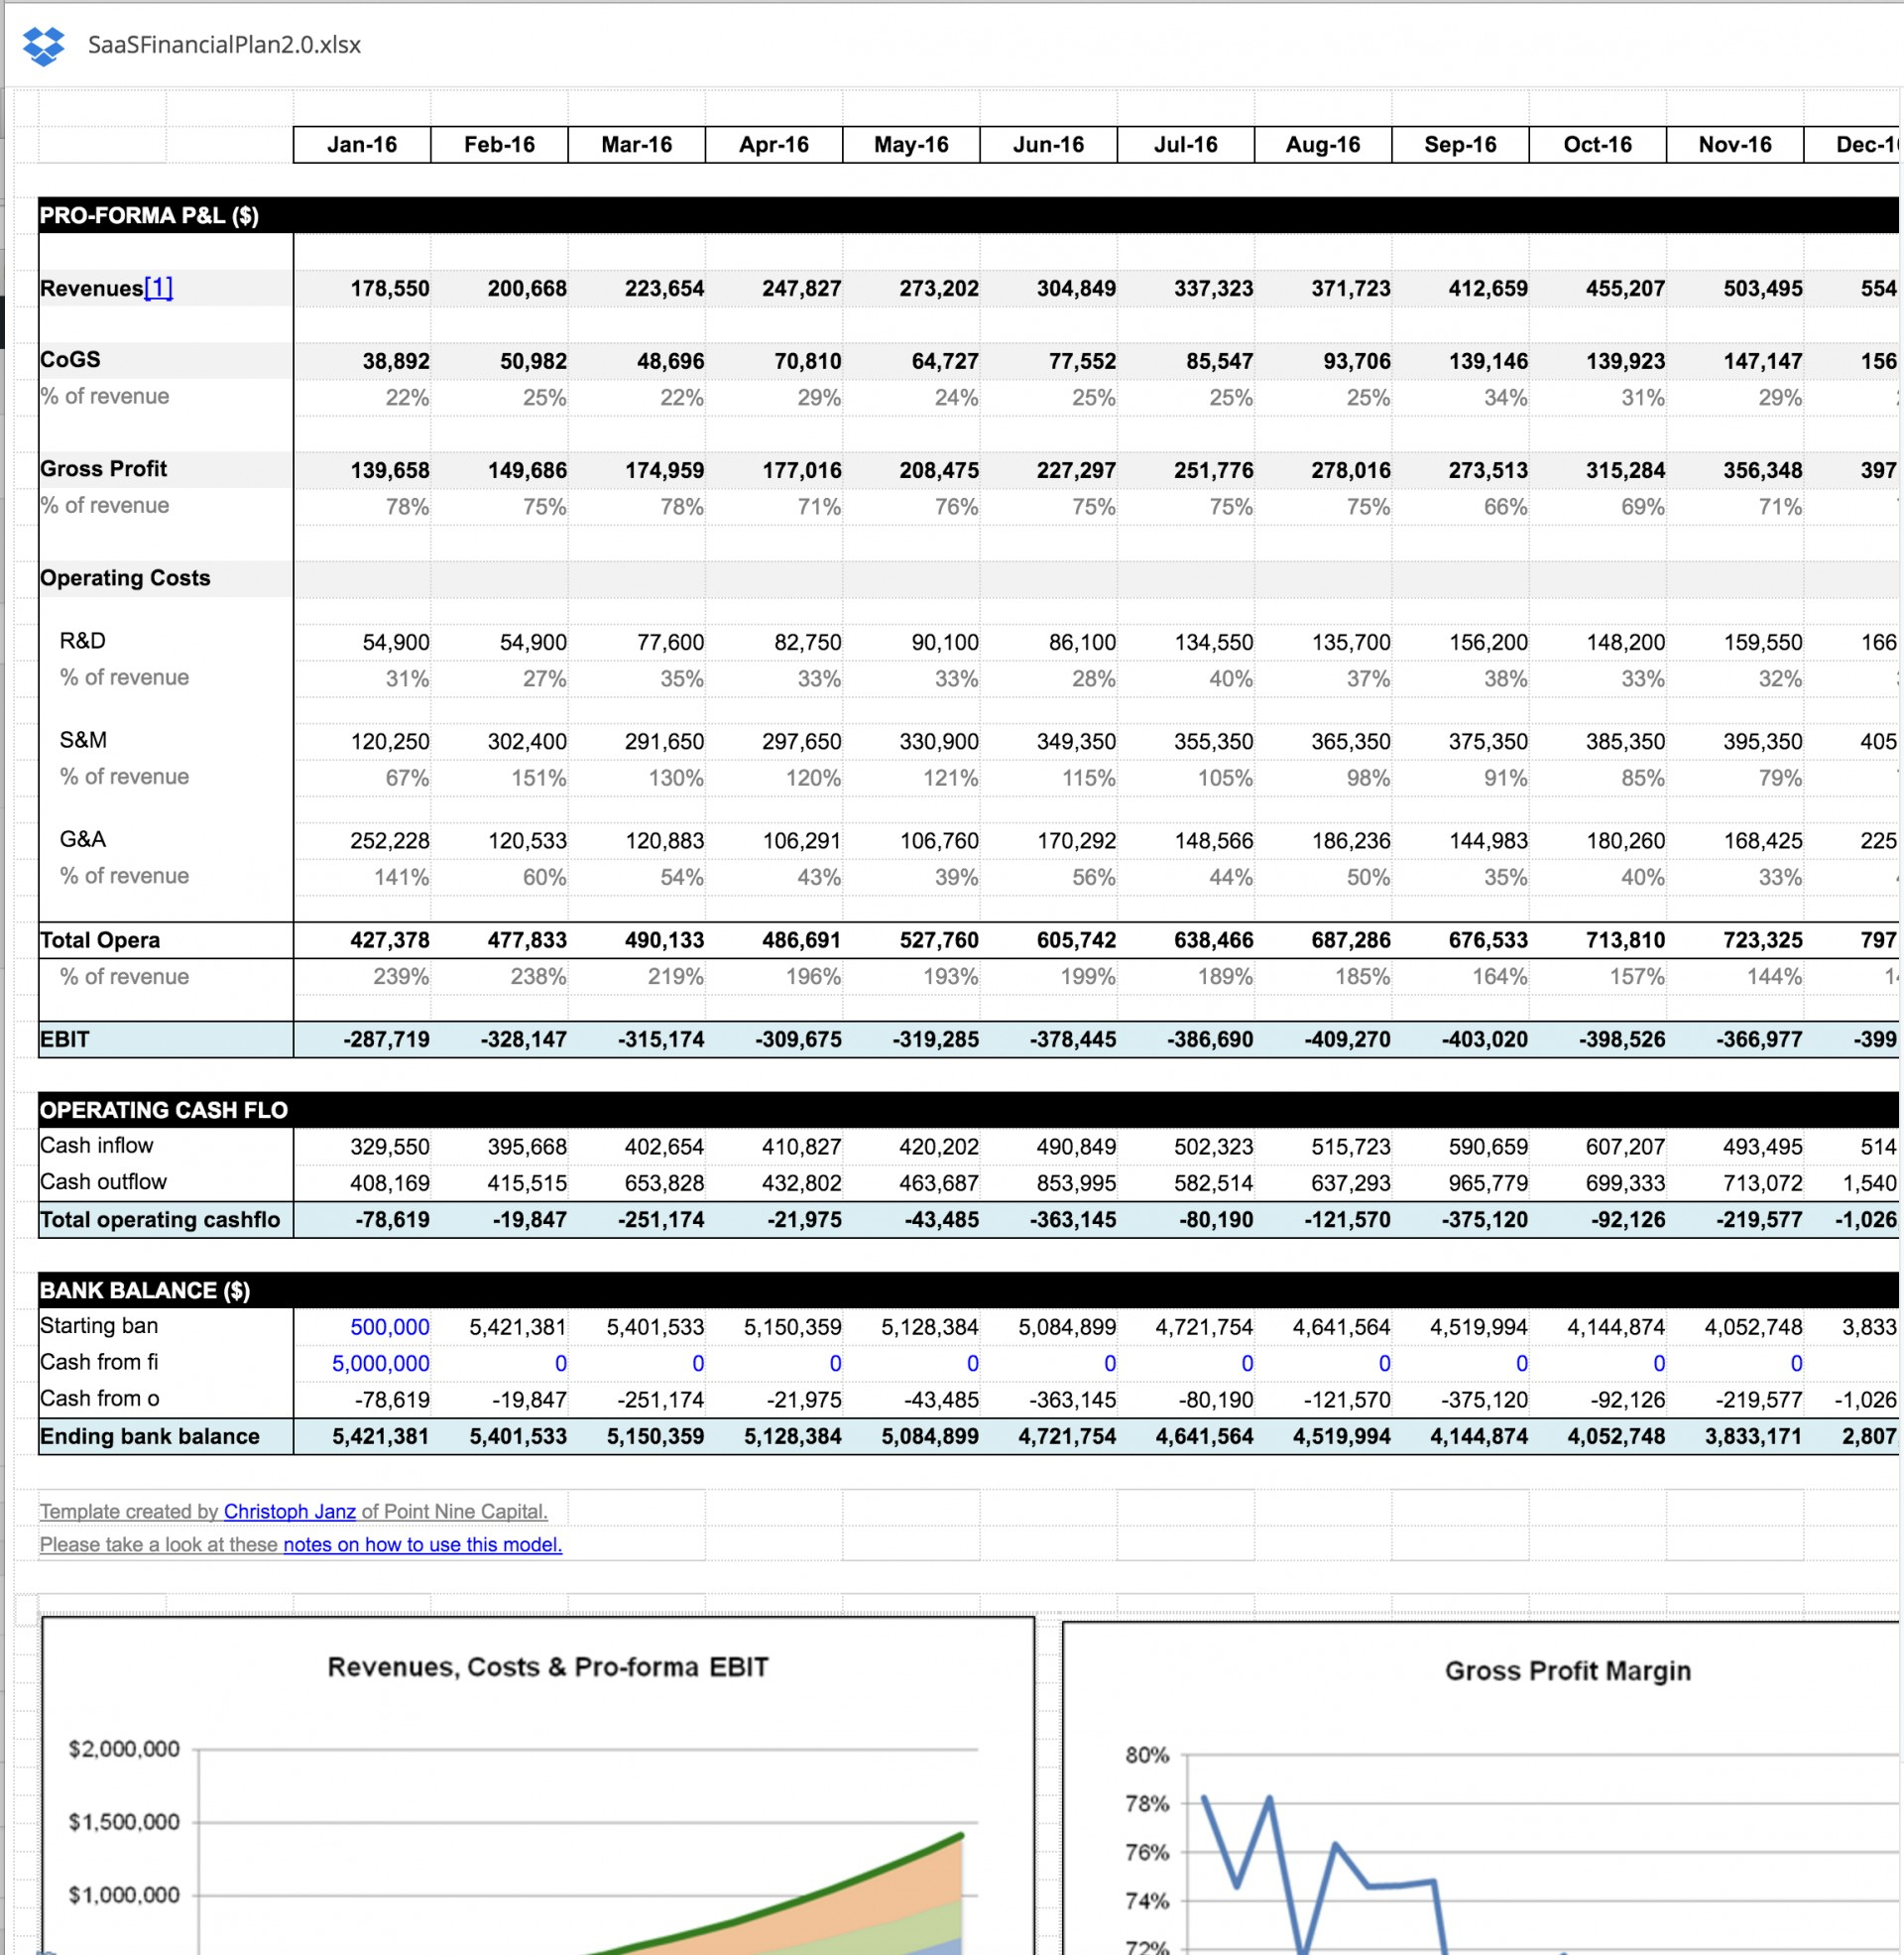 Weekly Cash Flow Forecast Spreadsheet Inside 022 Template Ideas Spreadsheet Project Cash Flow Forecast And Weekly